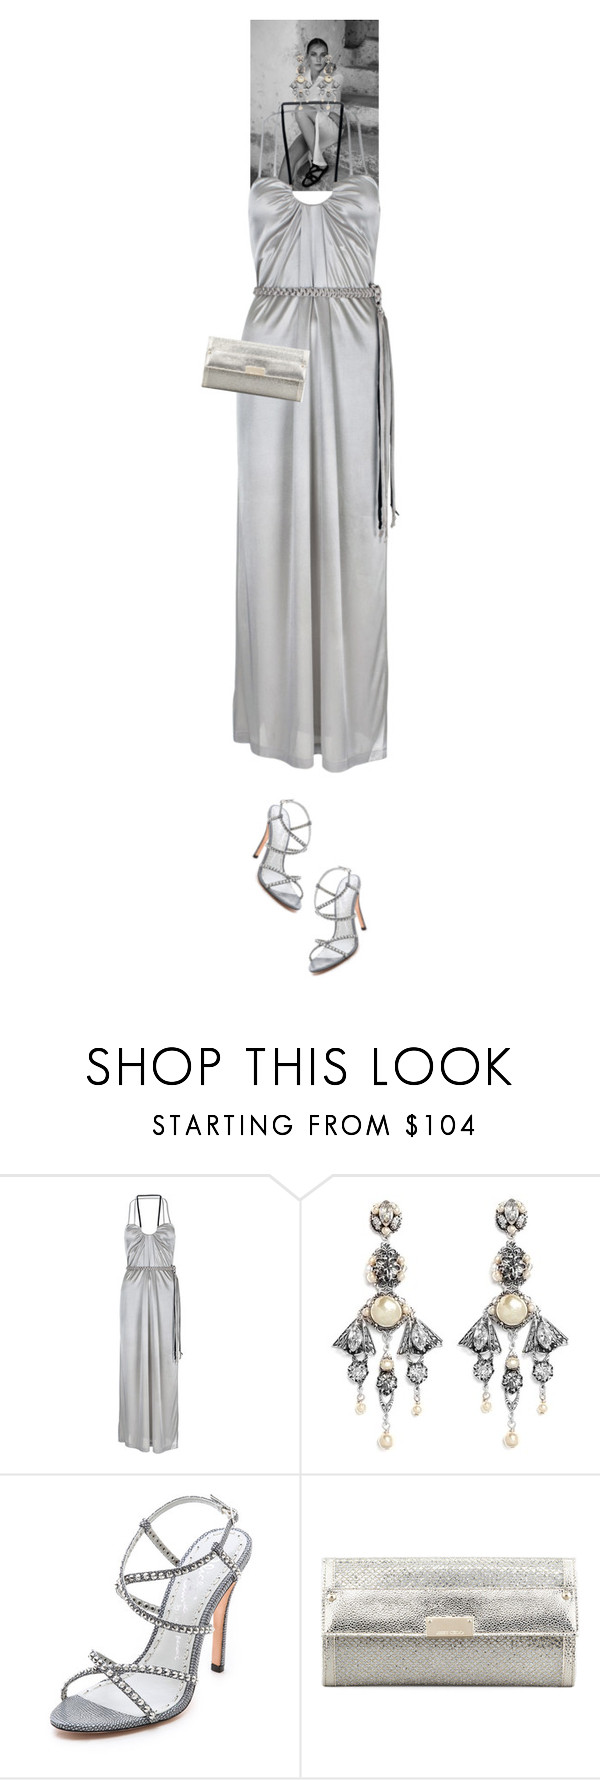 """Victoria Elise #6865"" by canlui ❤ liked on Polyvore featuring Nicola de Main, Miriam Haskell, Alice + Olivia, Jimmy Choo and fallwedding"